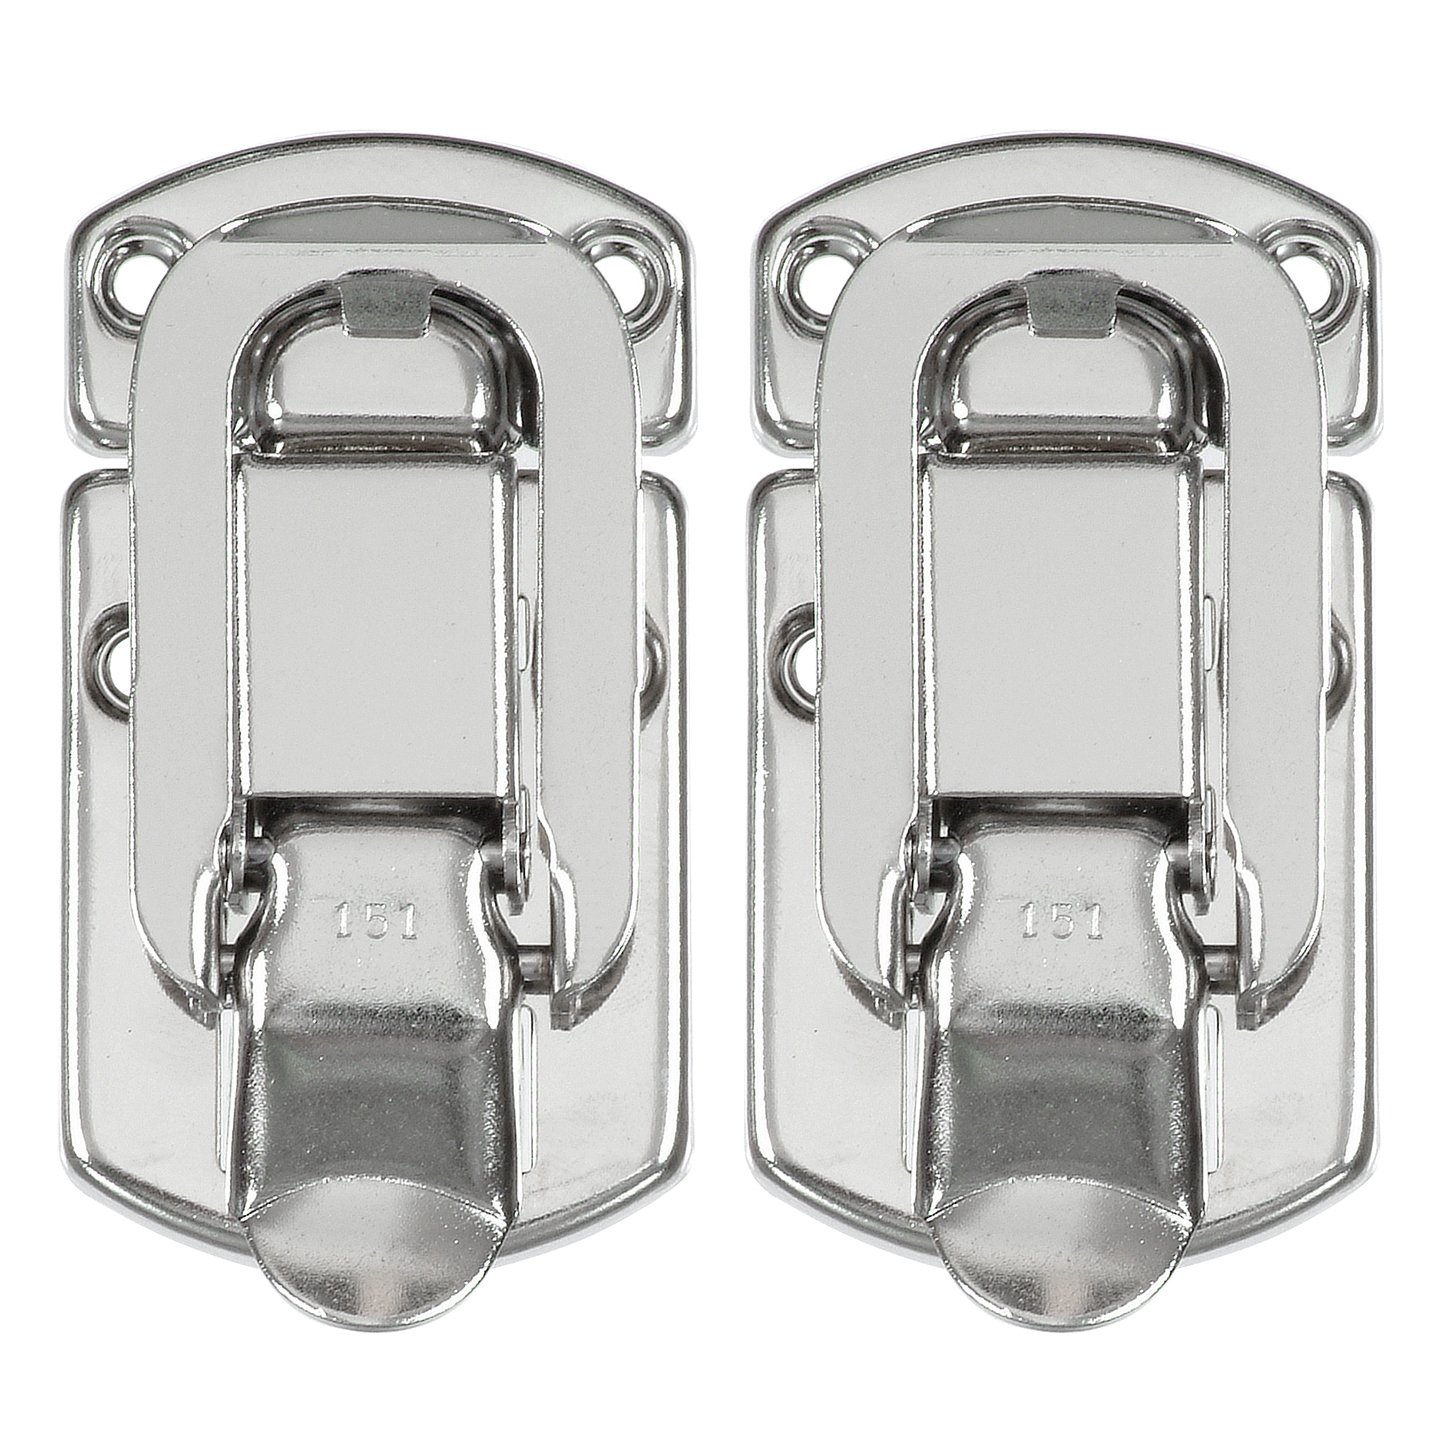 Reliable Hardware Company RH 2510 2 A Set of 2 Medium Size Nickle Plated Briefcase Latch